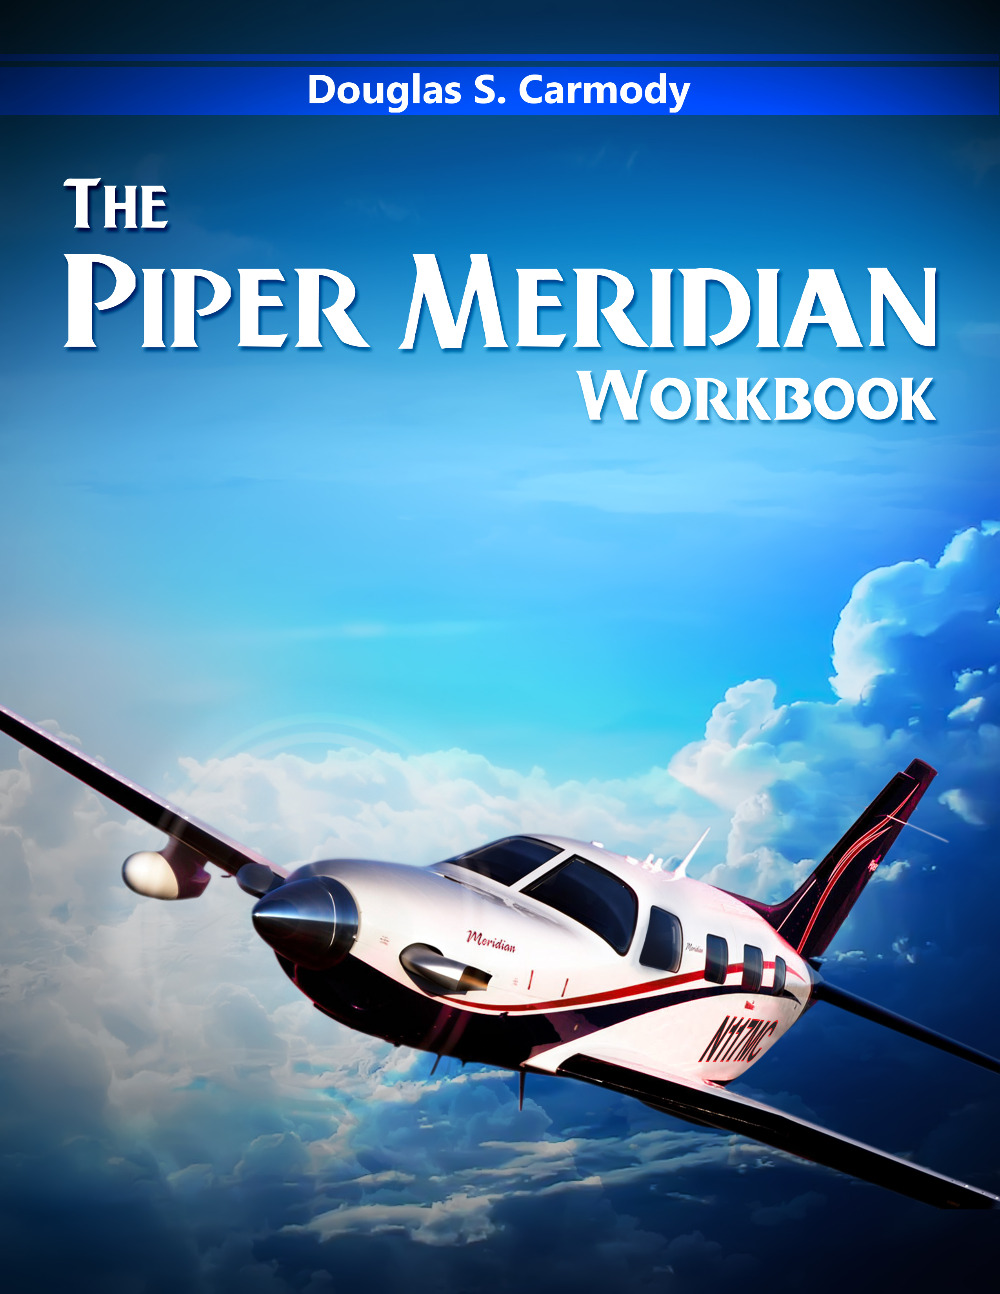 The Piper Meridian Workbook